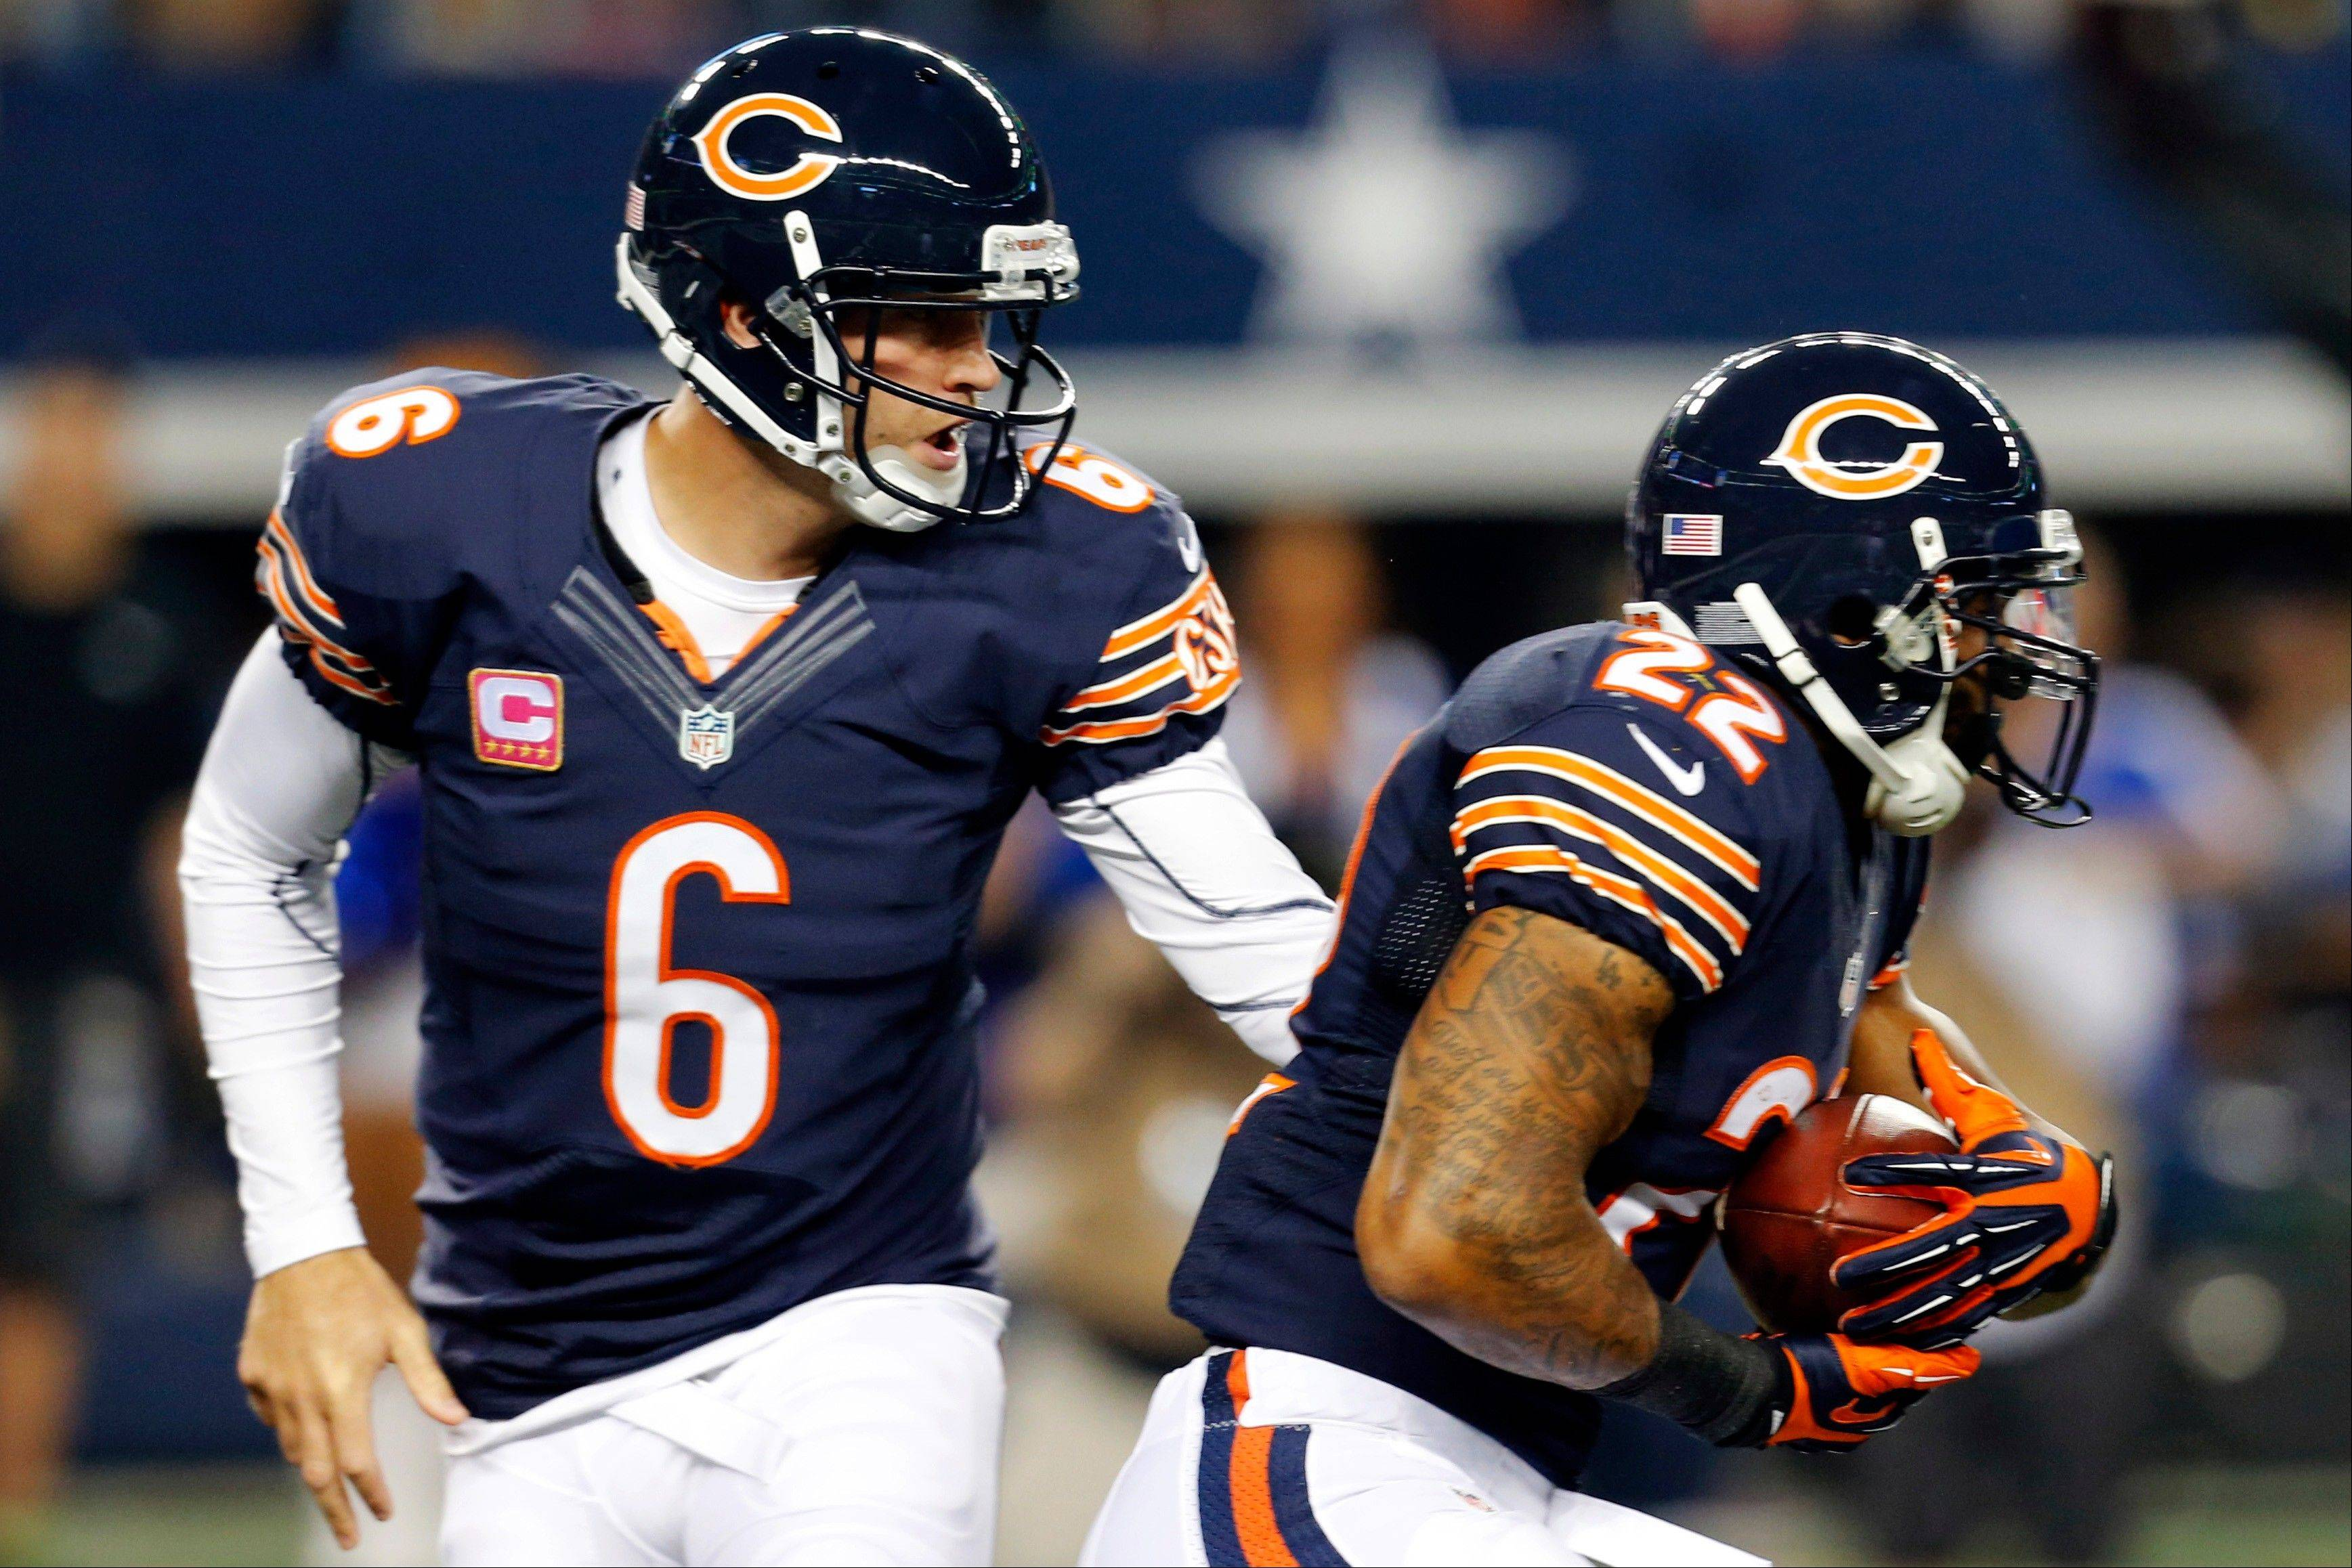 Bears quarterback Jay Cutler doesn�t seem to understand that being under the media microscope is all part of the NFL being what it is.